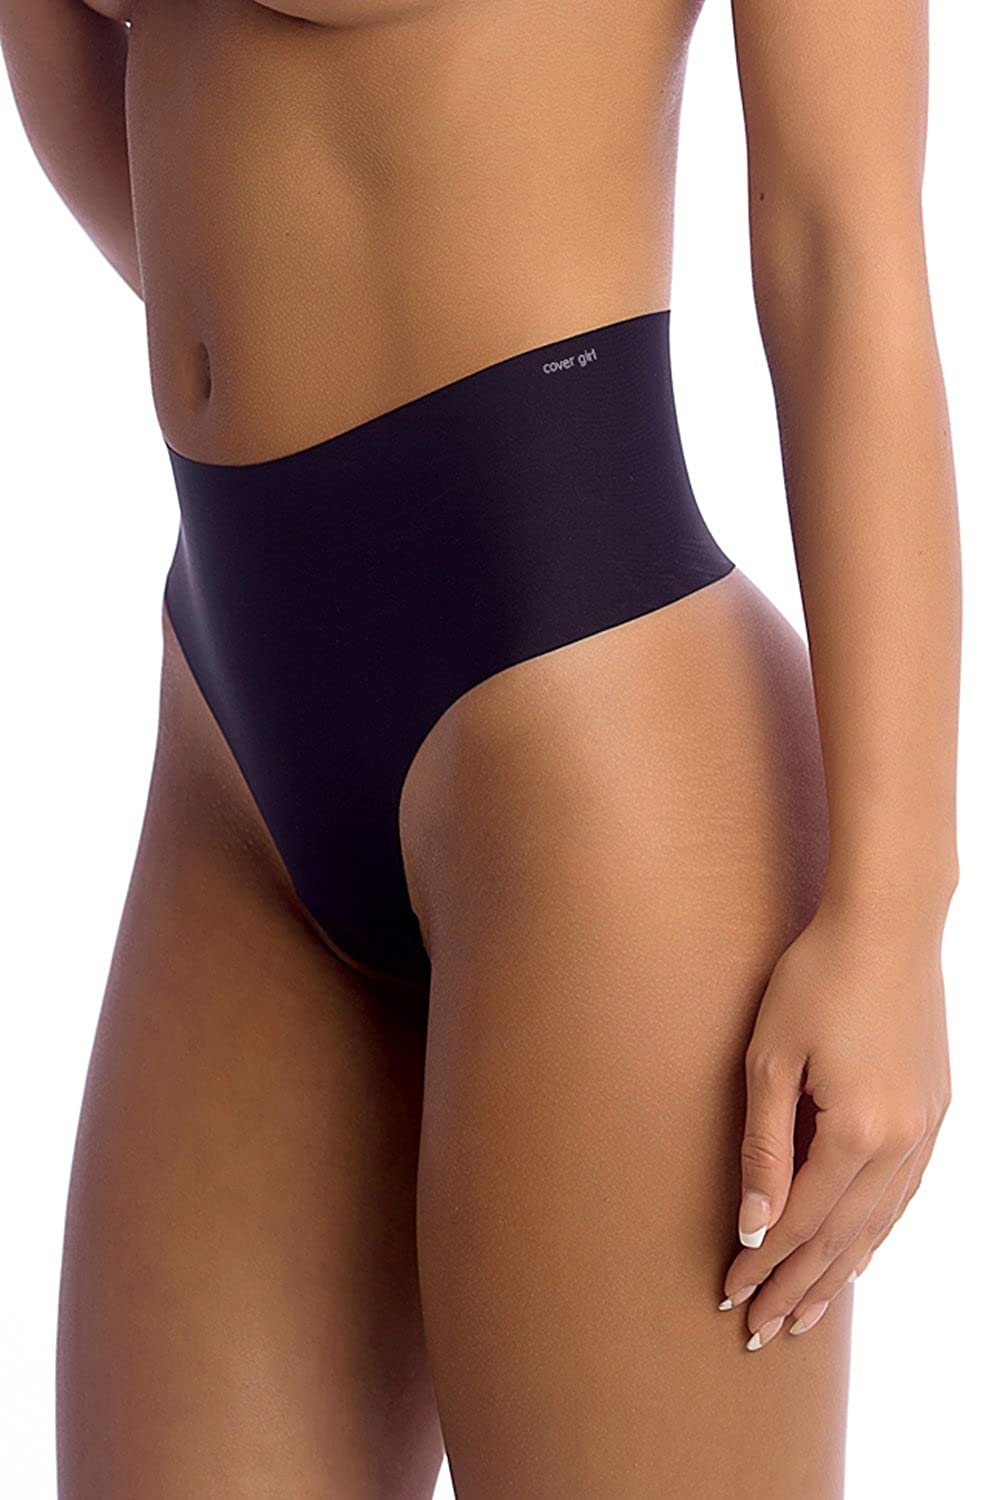 a9e2c52548d92 FIGURE-FLATTERING EFFECT: Smoothen out your tummy while still feeling  supremely sexy with CoverGirl Shapewear's high waisted thong underwear.